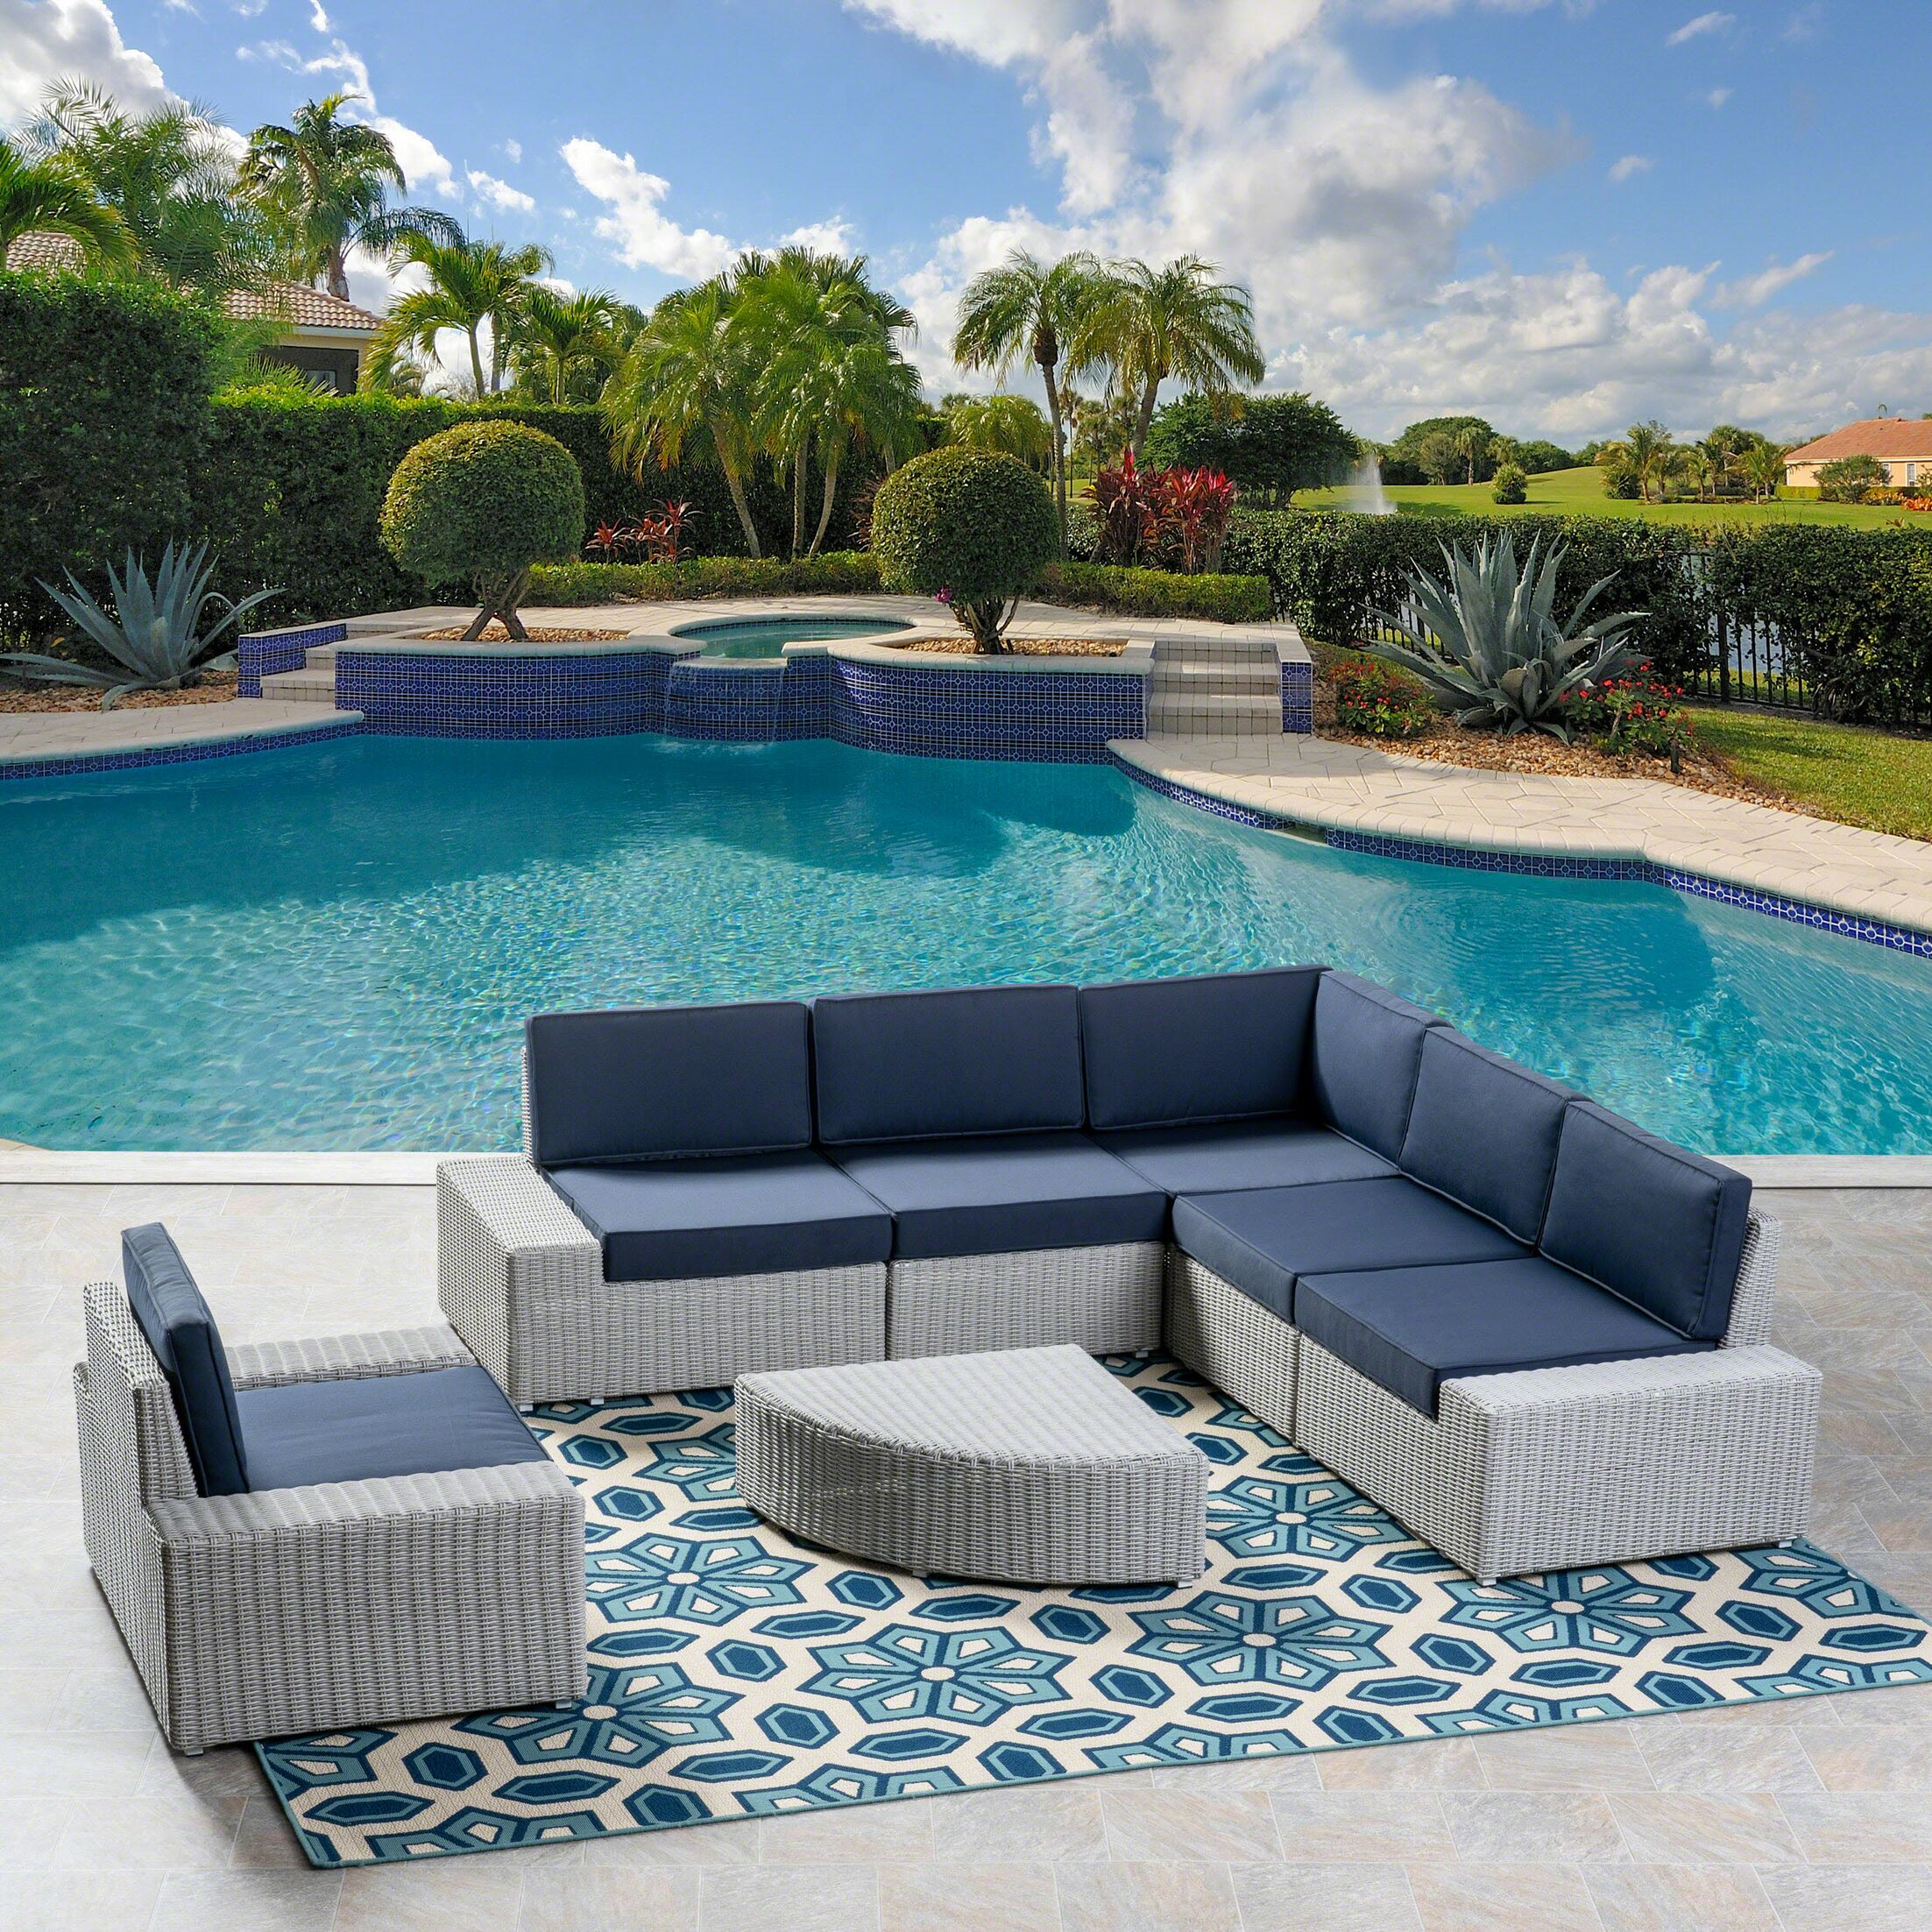 Glendon 6 Piece Rattan Sectional Set with Cushions Cushion Color: Navy Blue